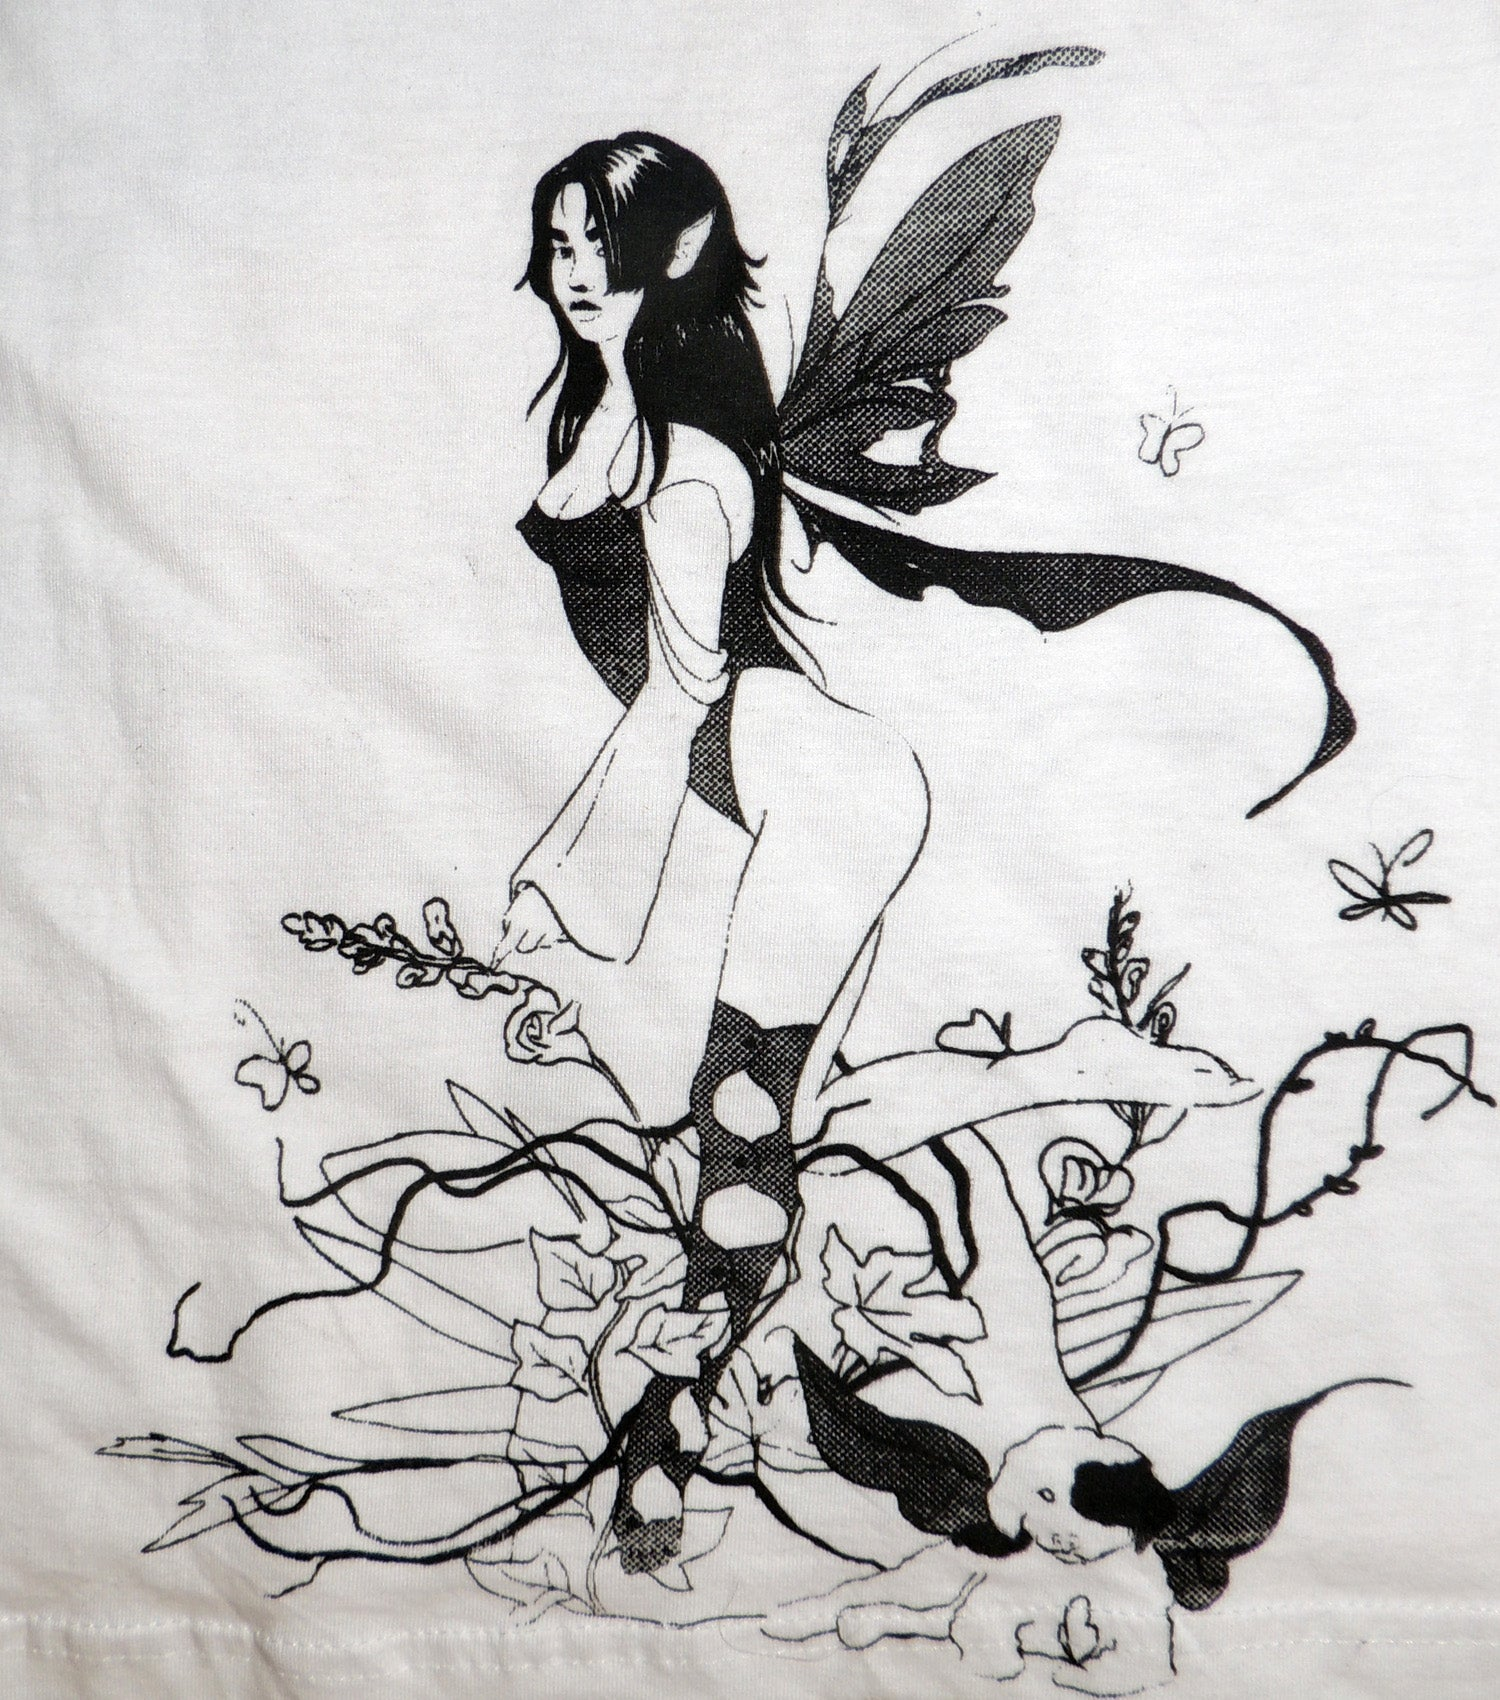 Gabrielle Rosenstein, Elf, Fairy, Dog, Flowers, Screen printed, Vintage, Made in Los Angeles, Second Hand, Sustainable, Kathleen, Kathleen Los Angeles, Independent Boutique, Independent Artist, Los Angeles Boutique, Independent Designer, Los Angeles Artist